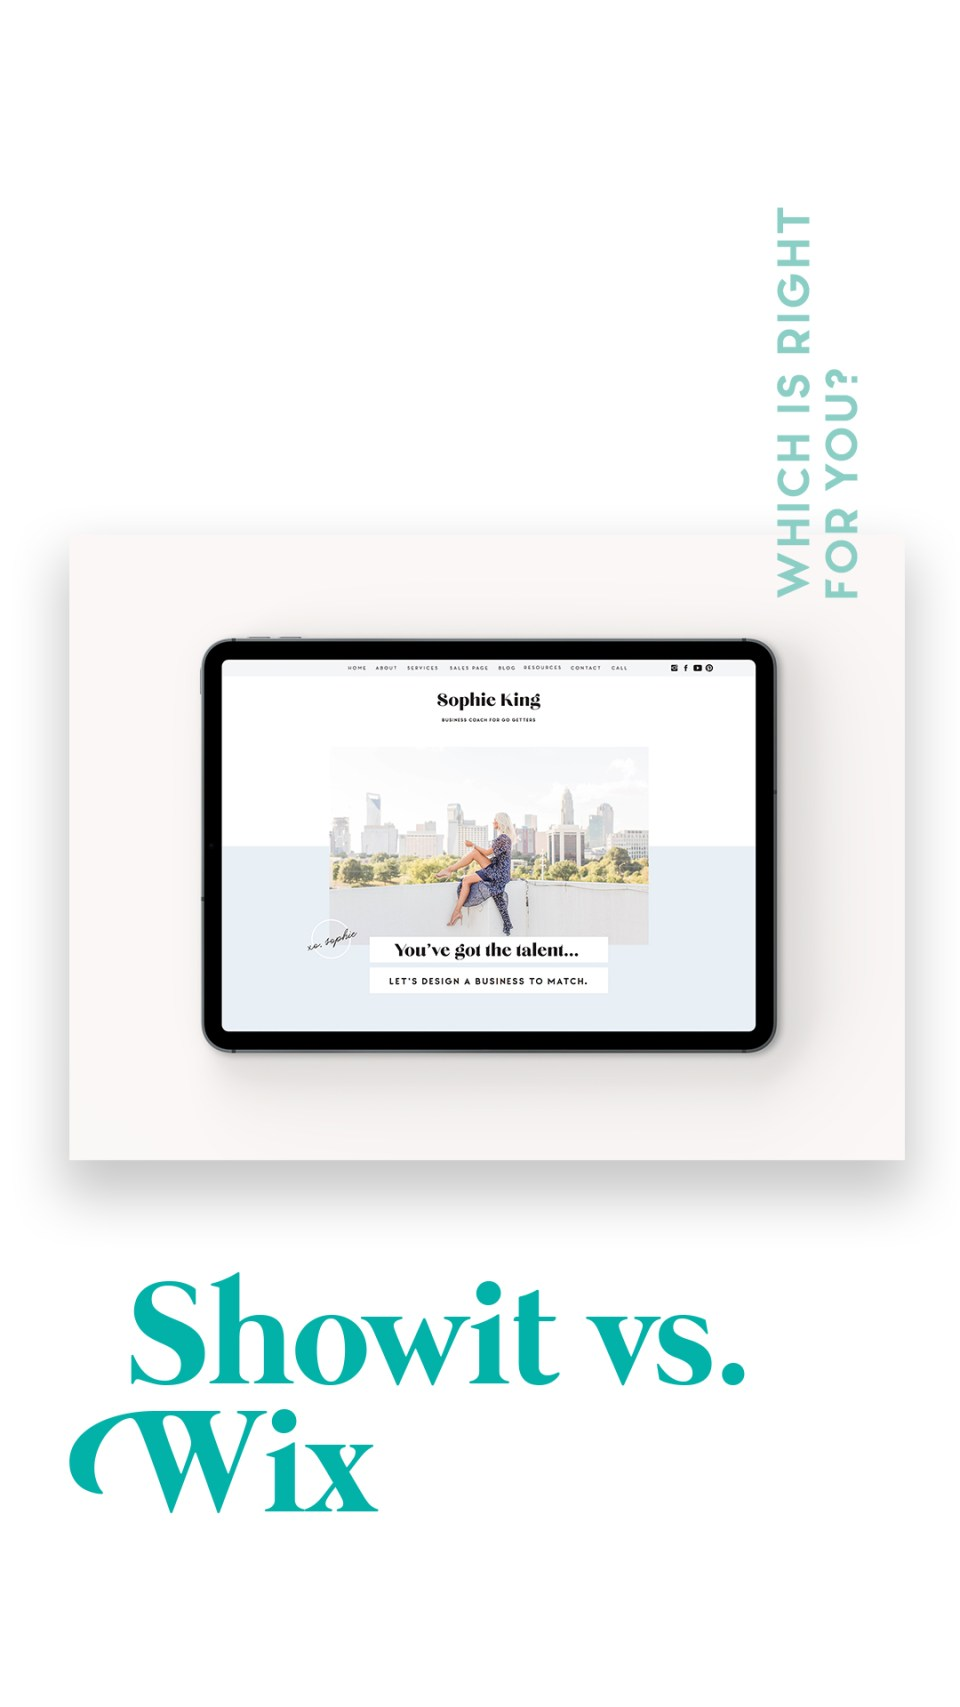 Showit vs Wix - what its like to switch to Showit